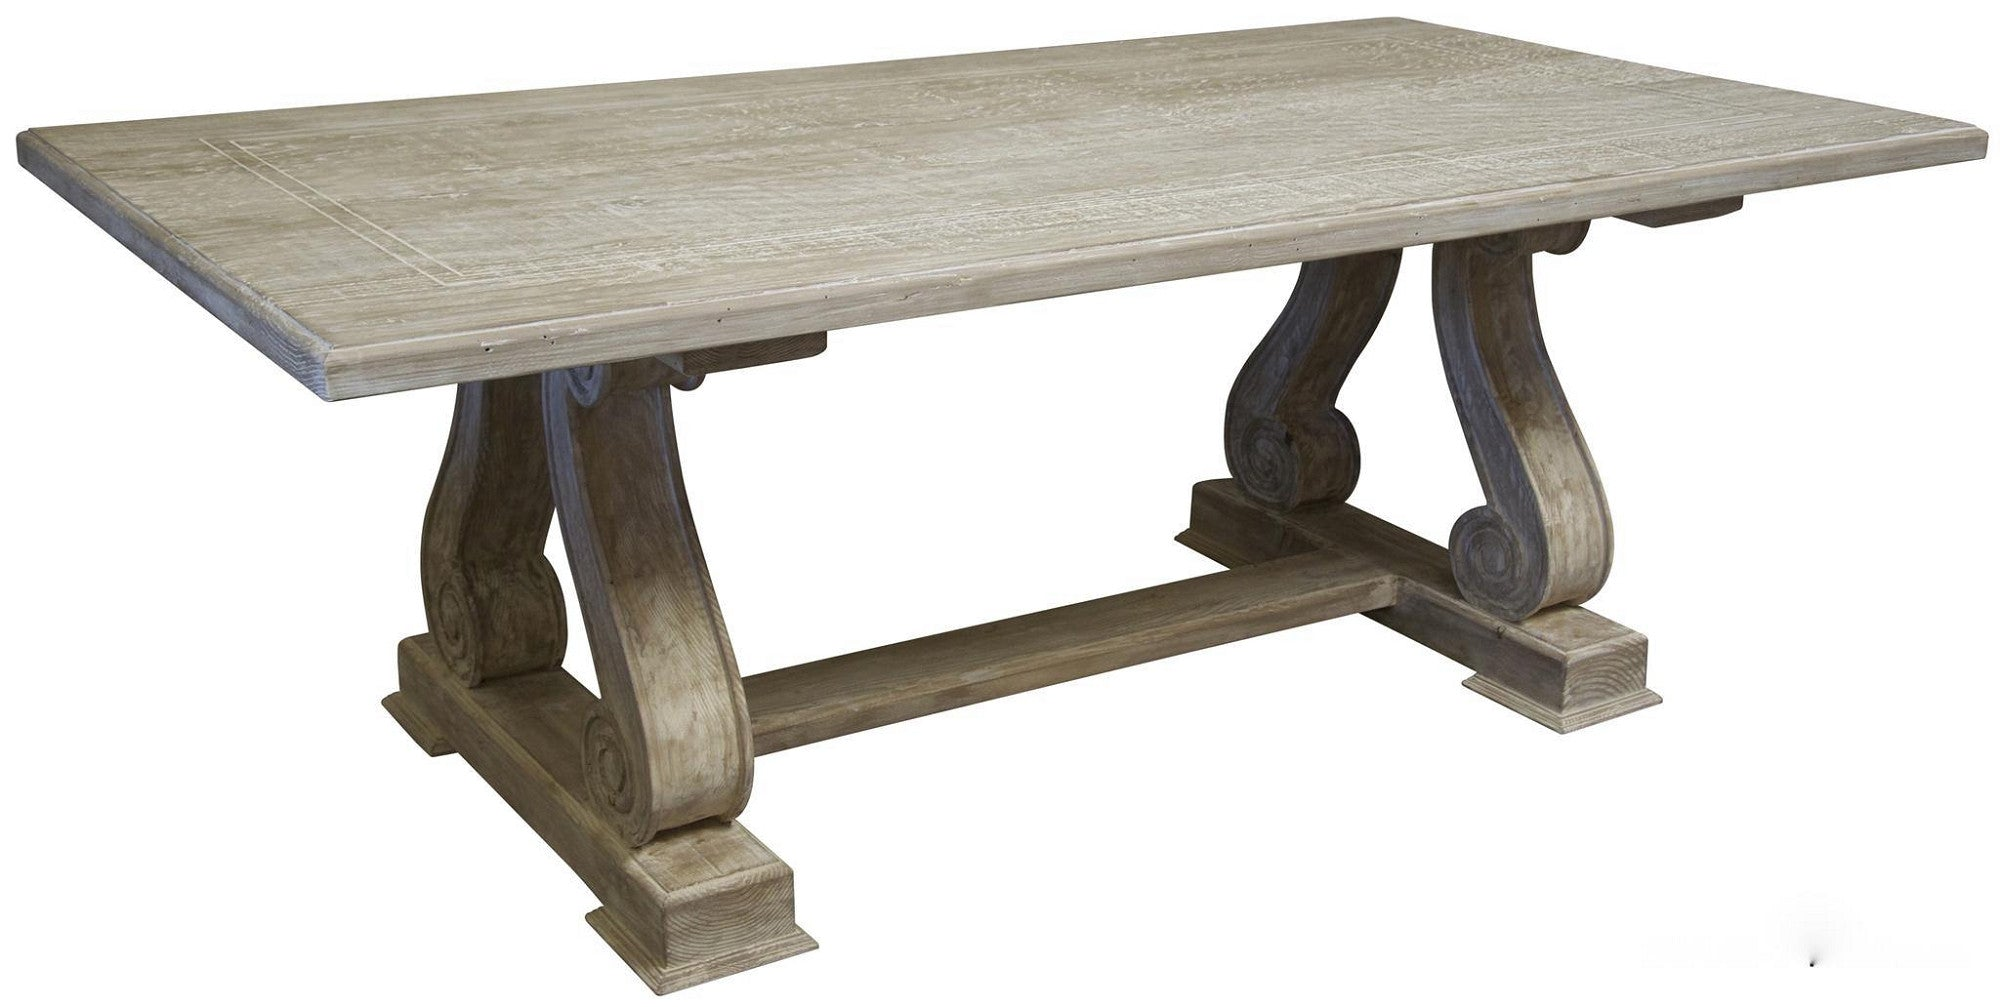 Vintage Metal Dining Table Industrial Rustic Calia Style Dining Table Vintage Reclaimed Wood